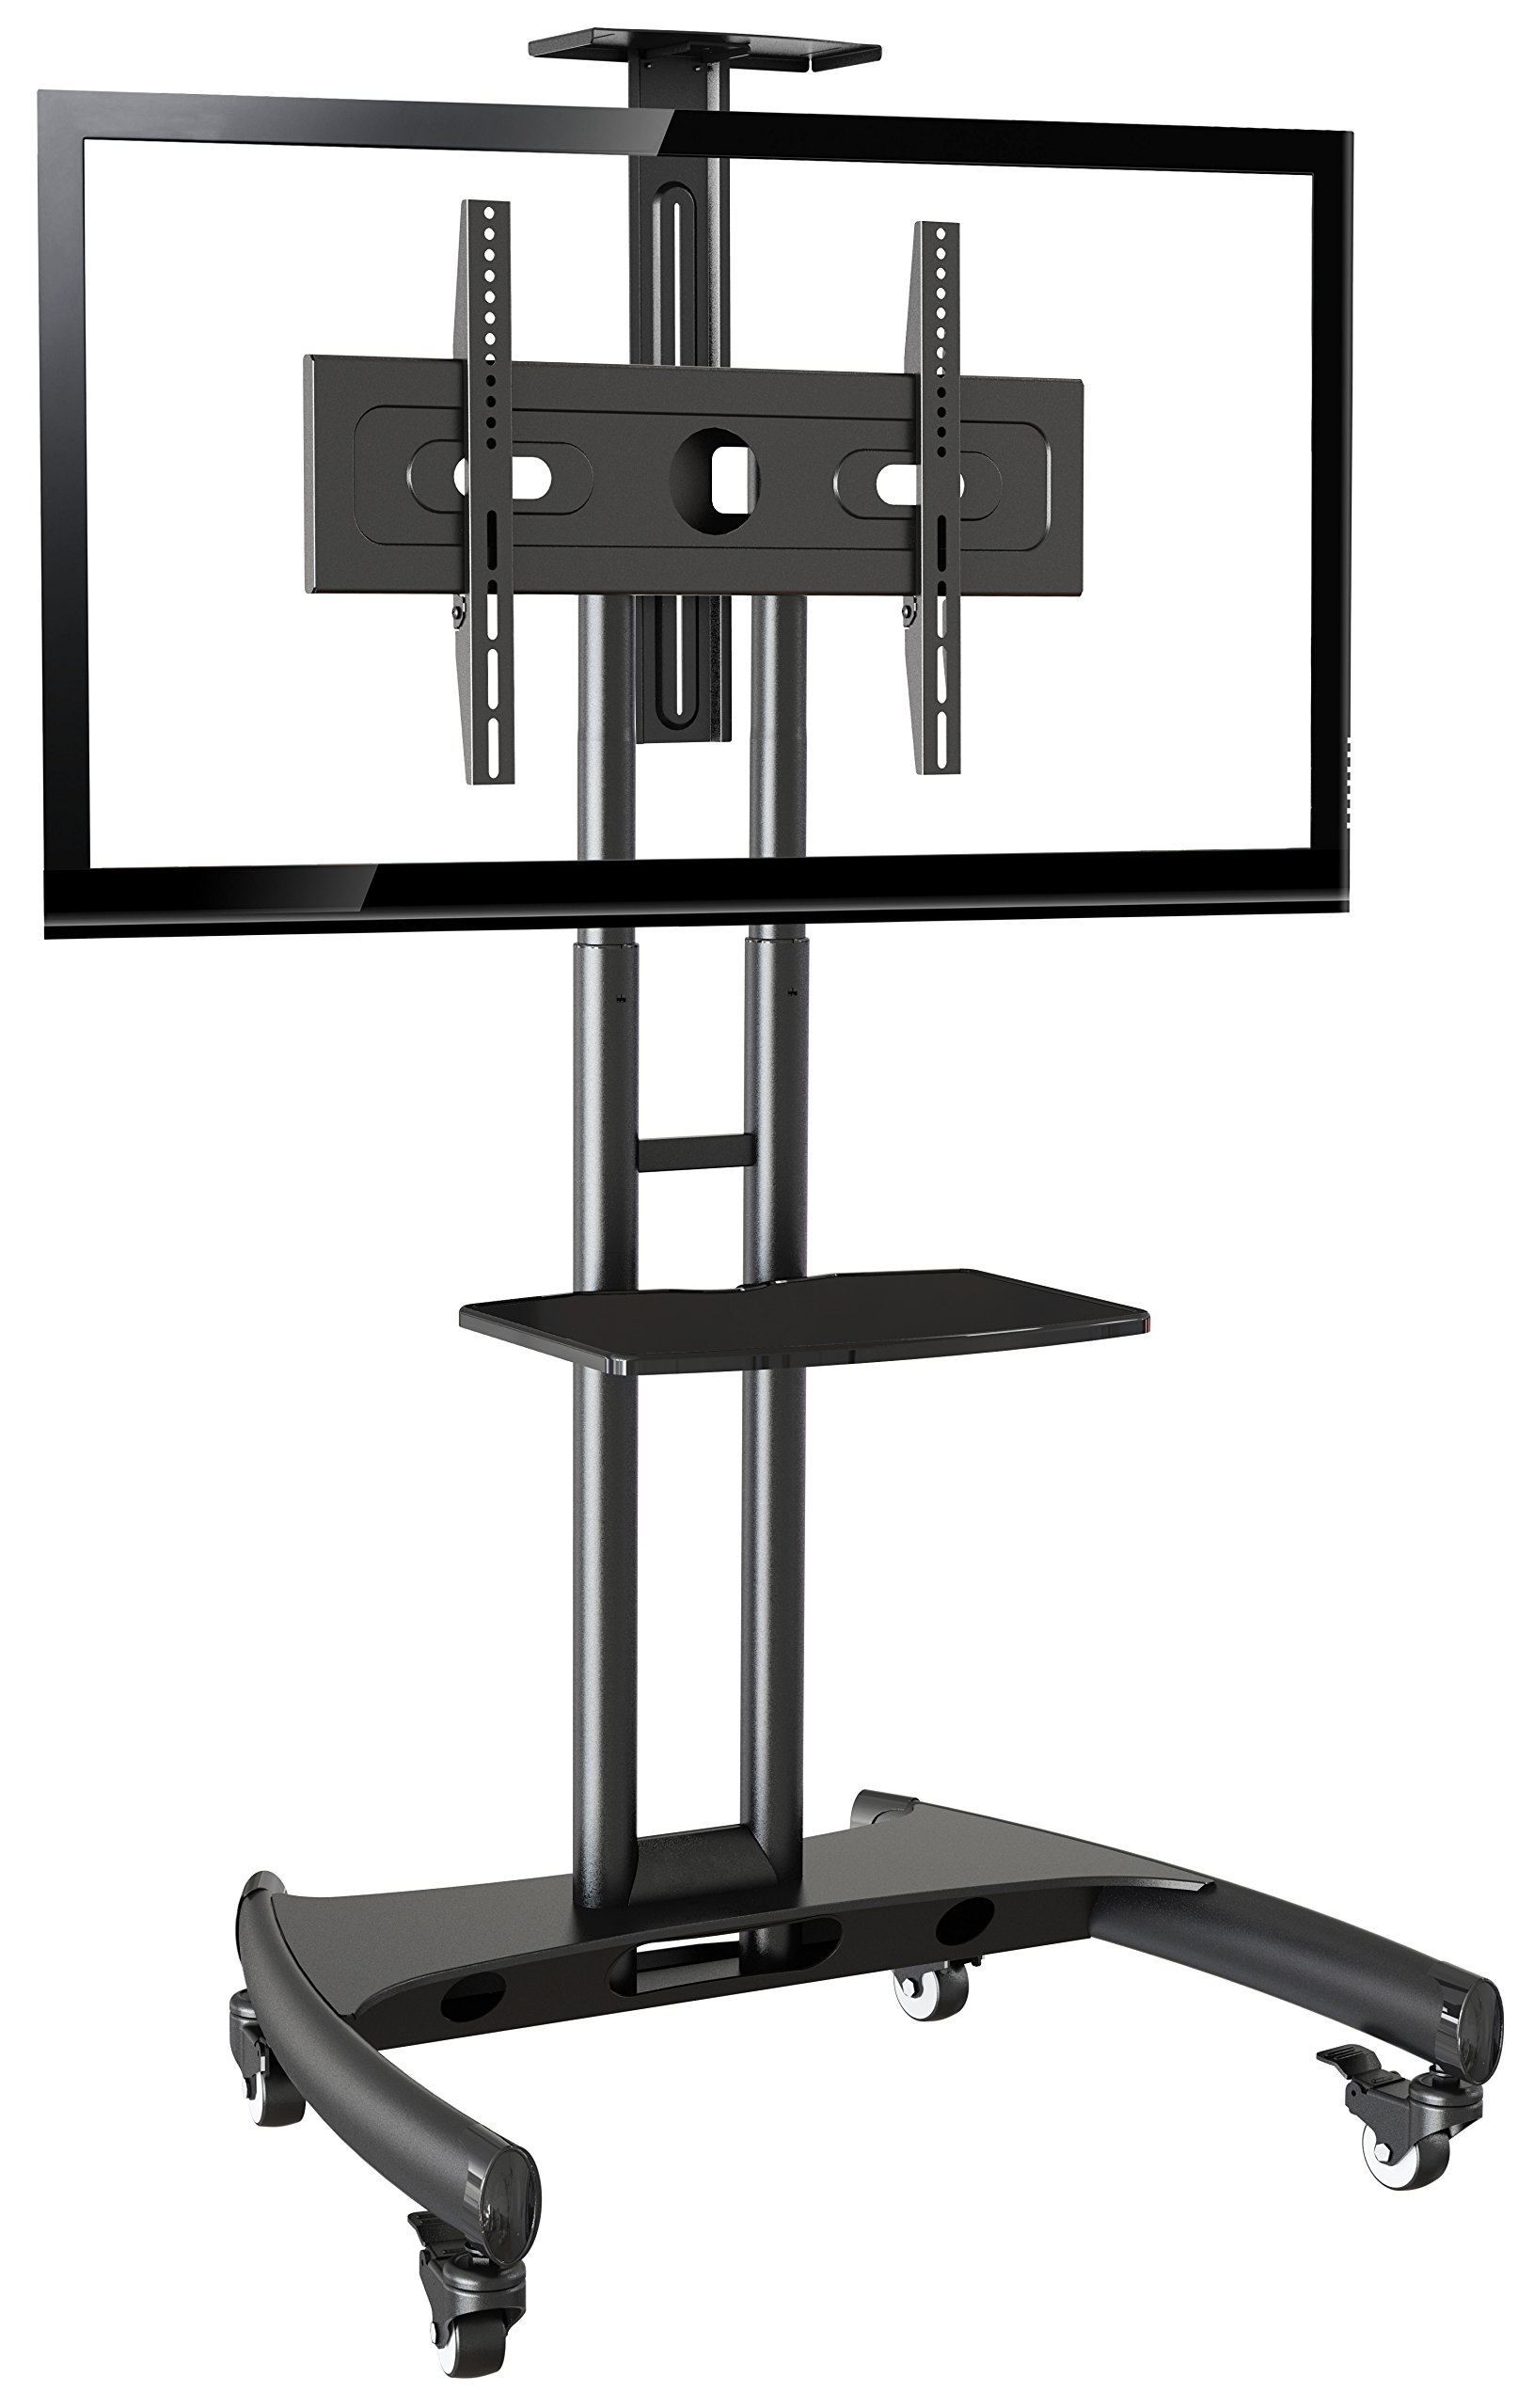 Rocelco VSTC Adjustable Height Mobile TV Stand, for 32-70 inch Flat Screen TVs, with with AV and Webcam Shelf - Black by Rocelco (Image #1)